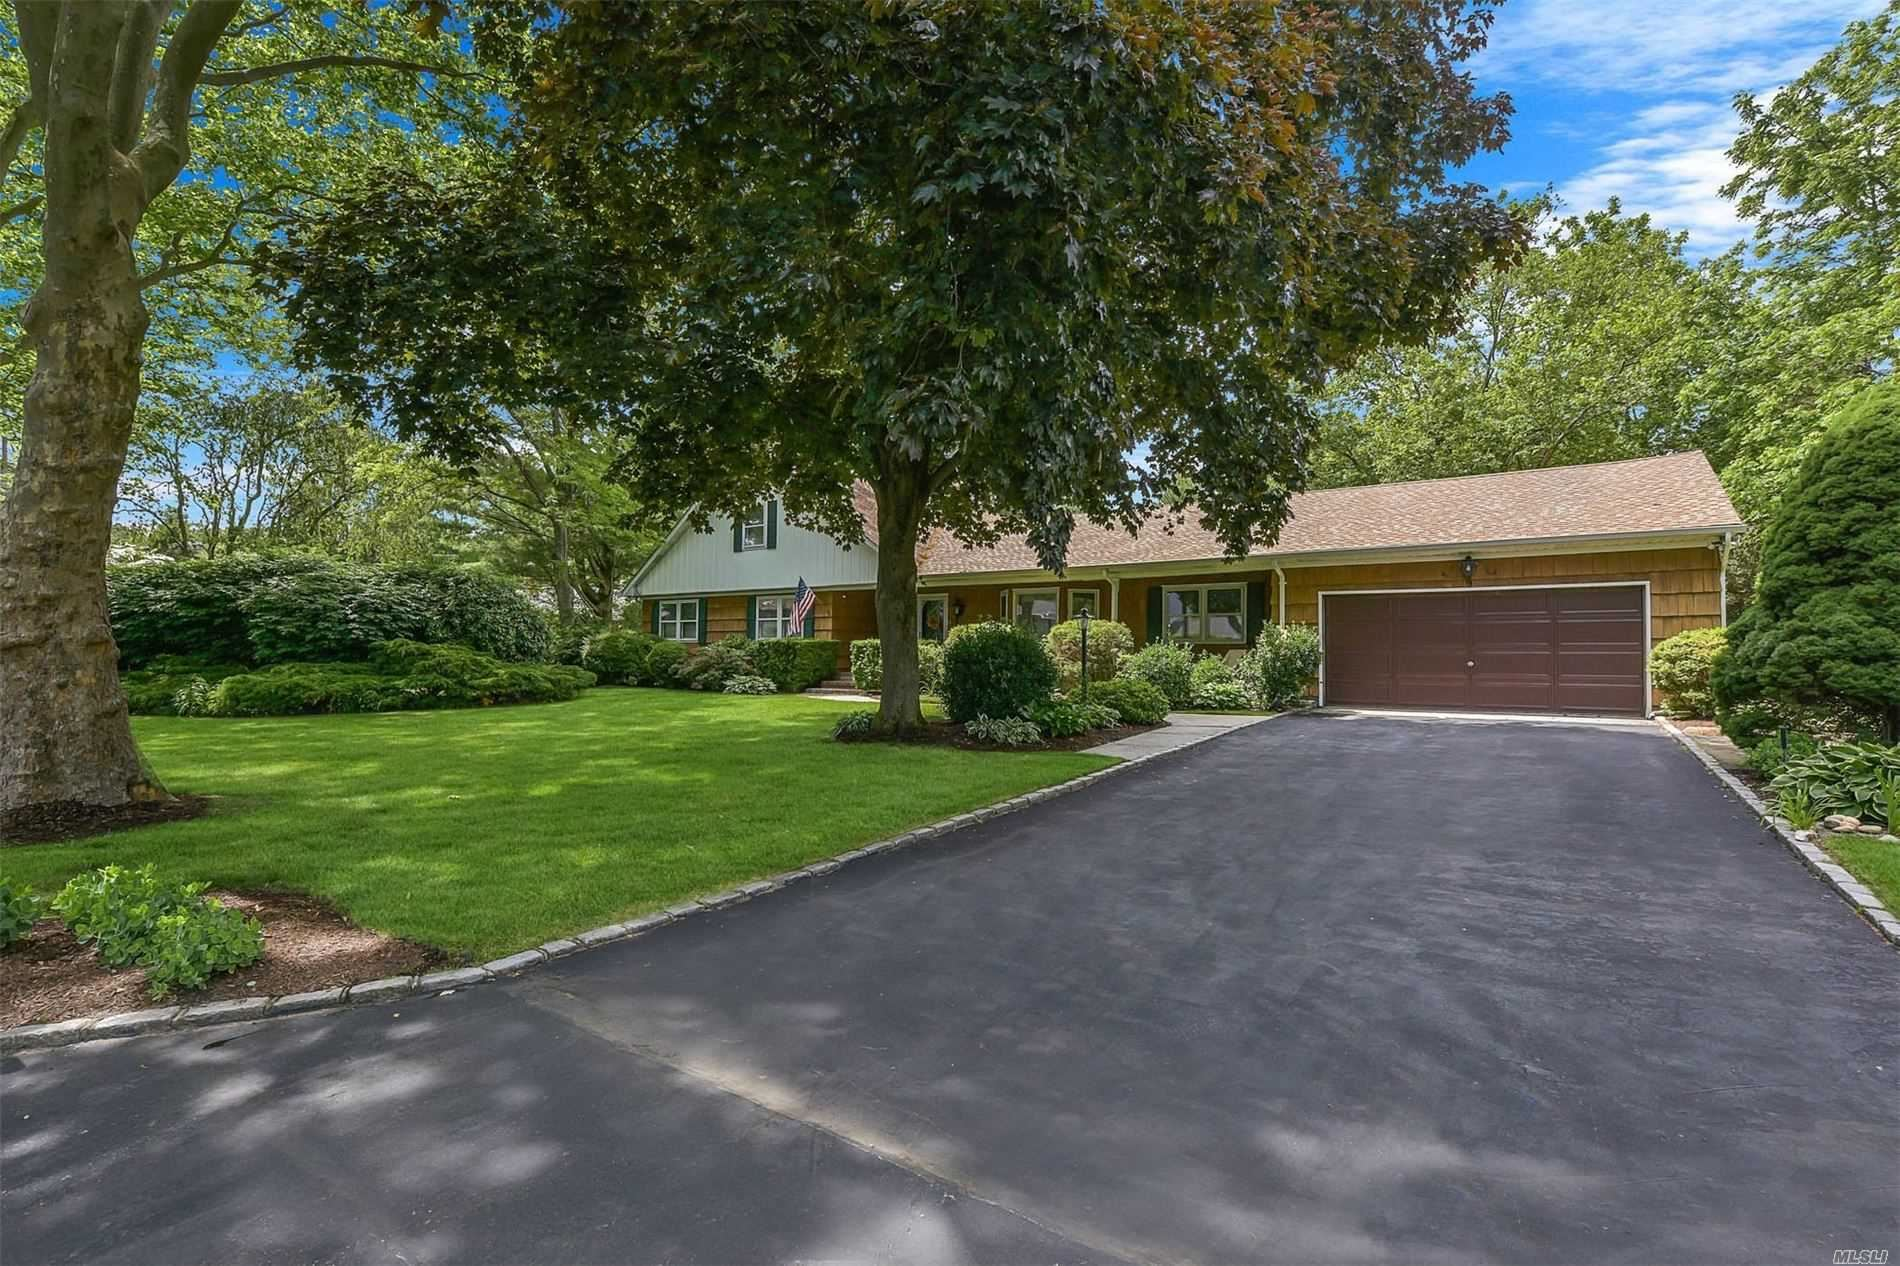 9 Edwin Ln, Huntington, NY 11743 - MLS#: 3223243